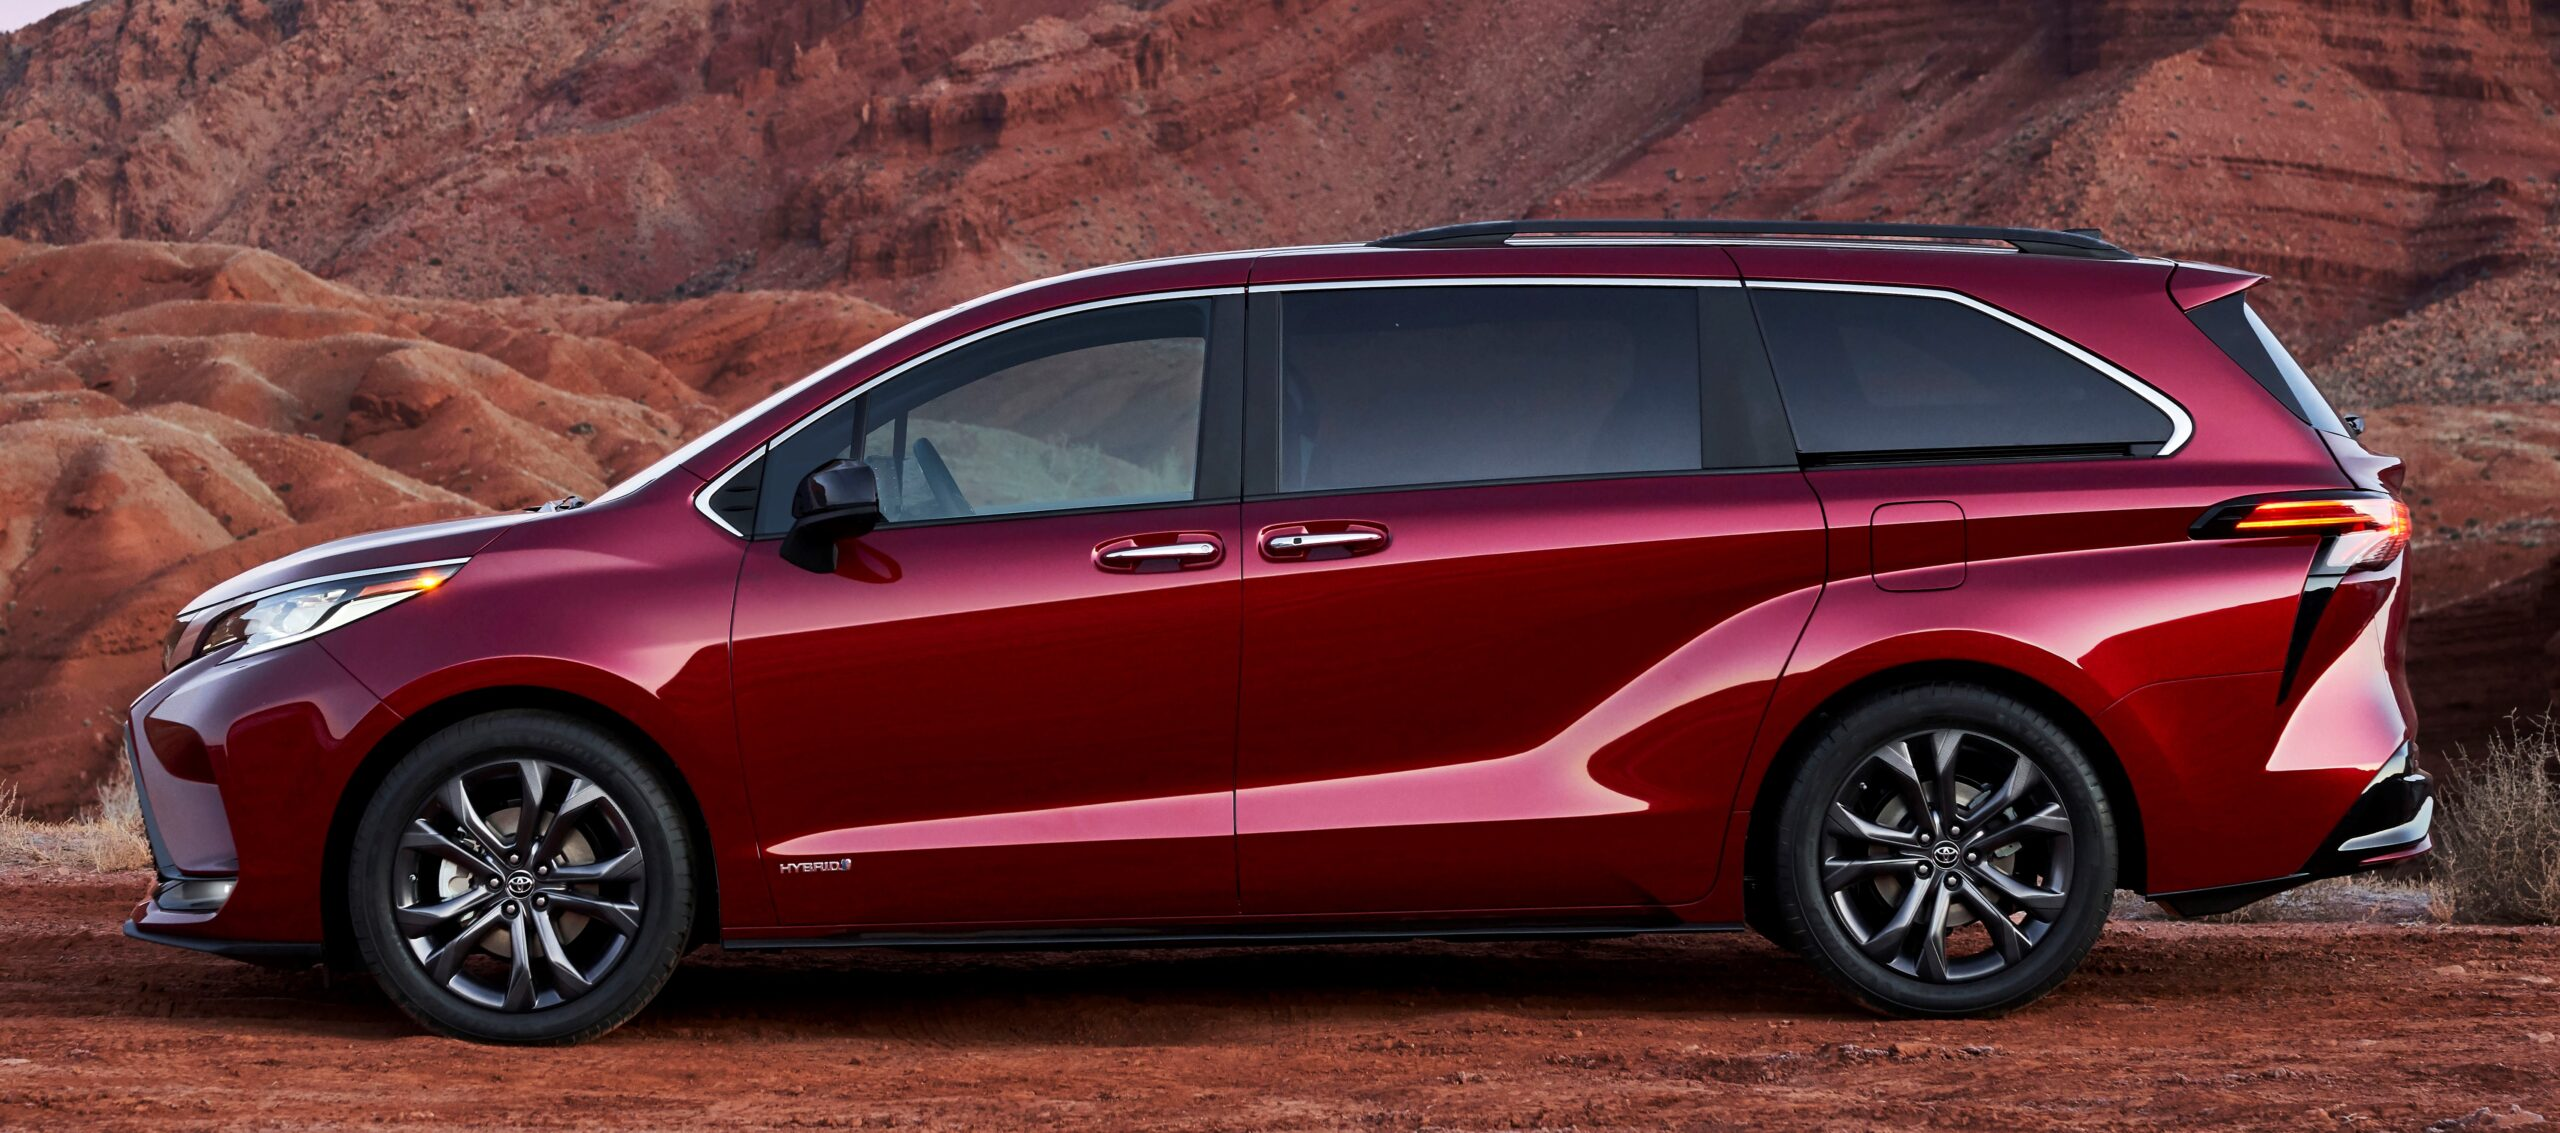 A side view of the new Sienna minivan